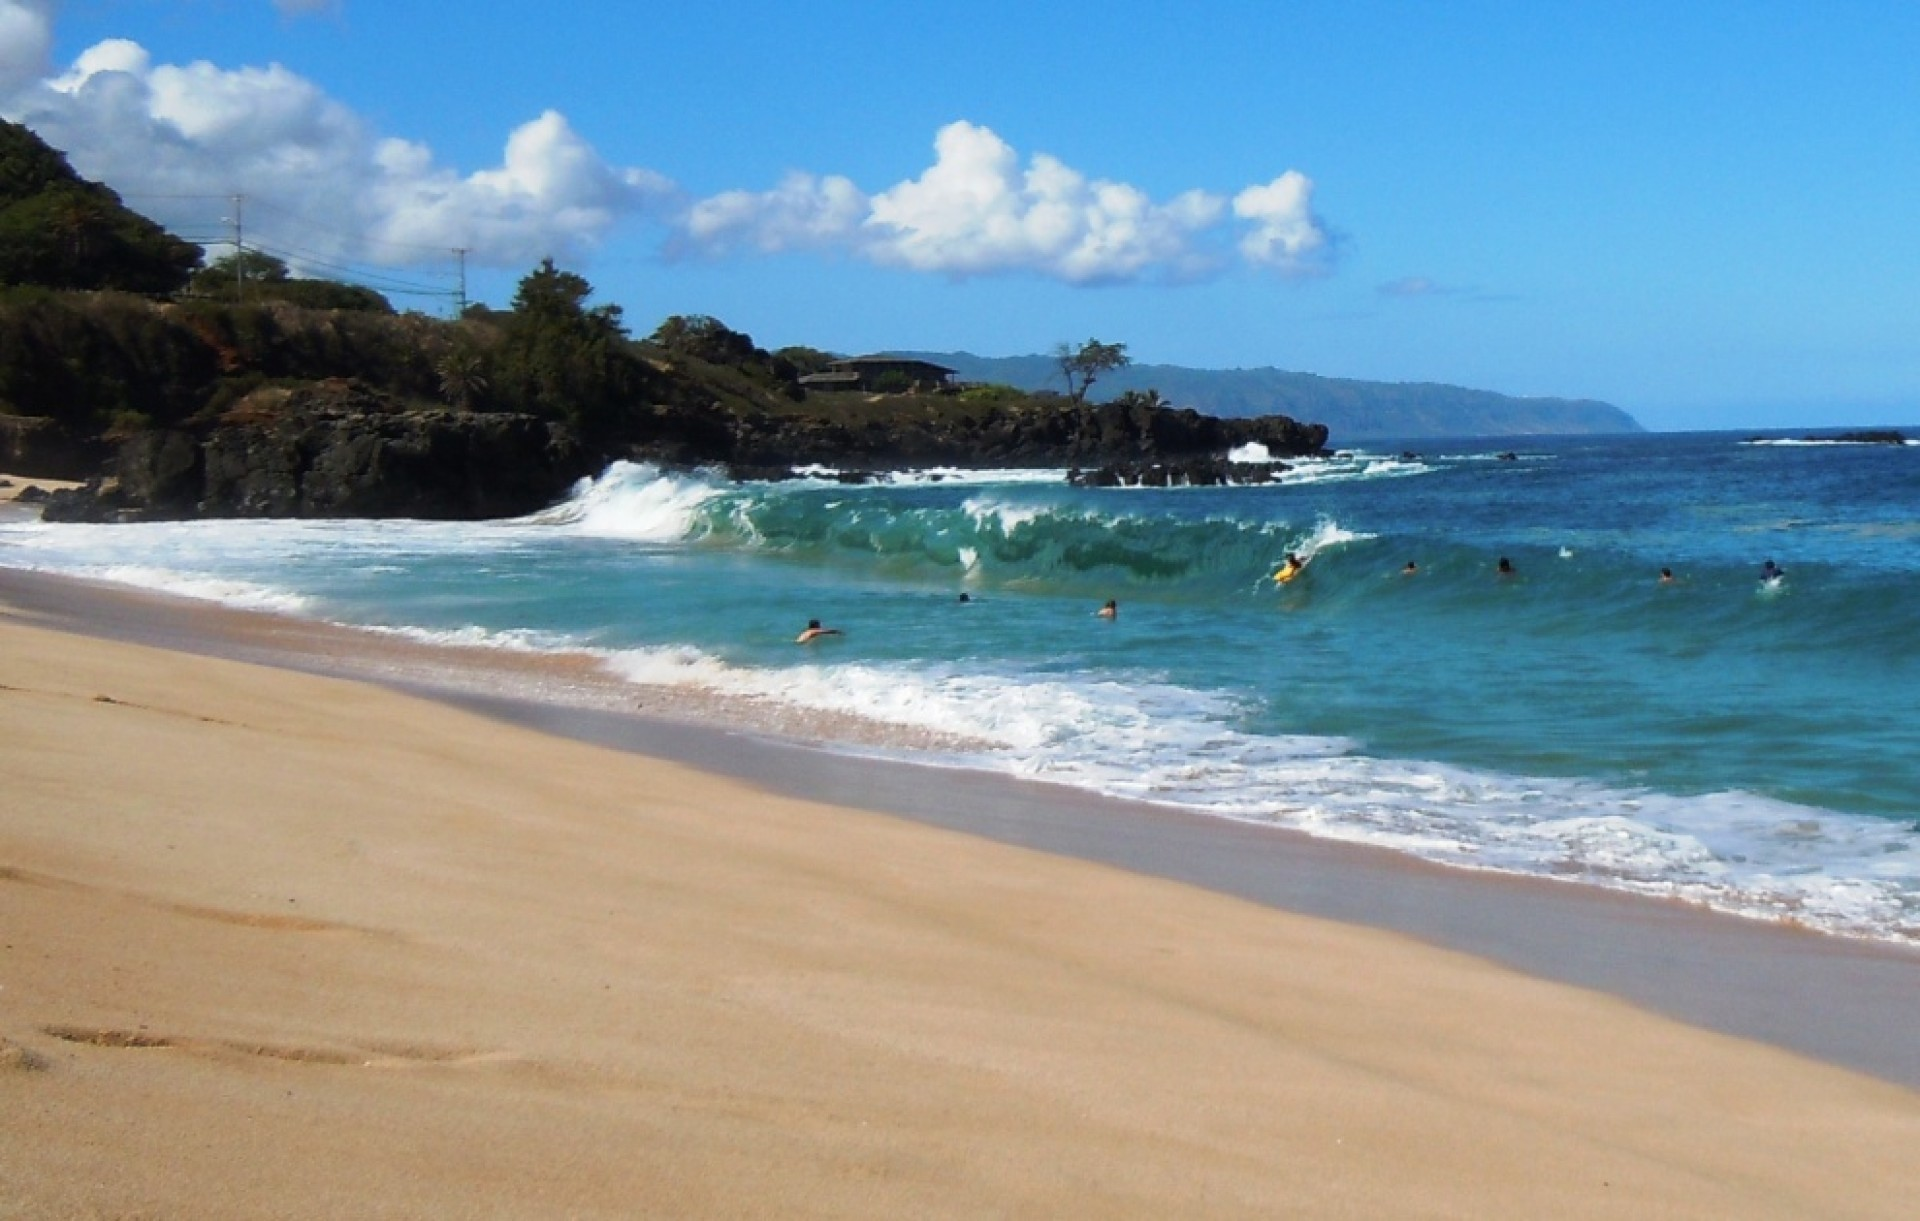 sqirl's photo of Waimea Bay